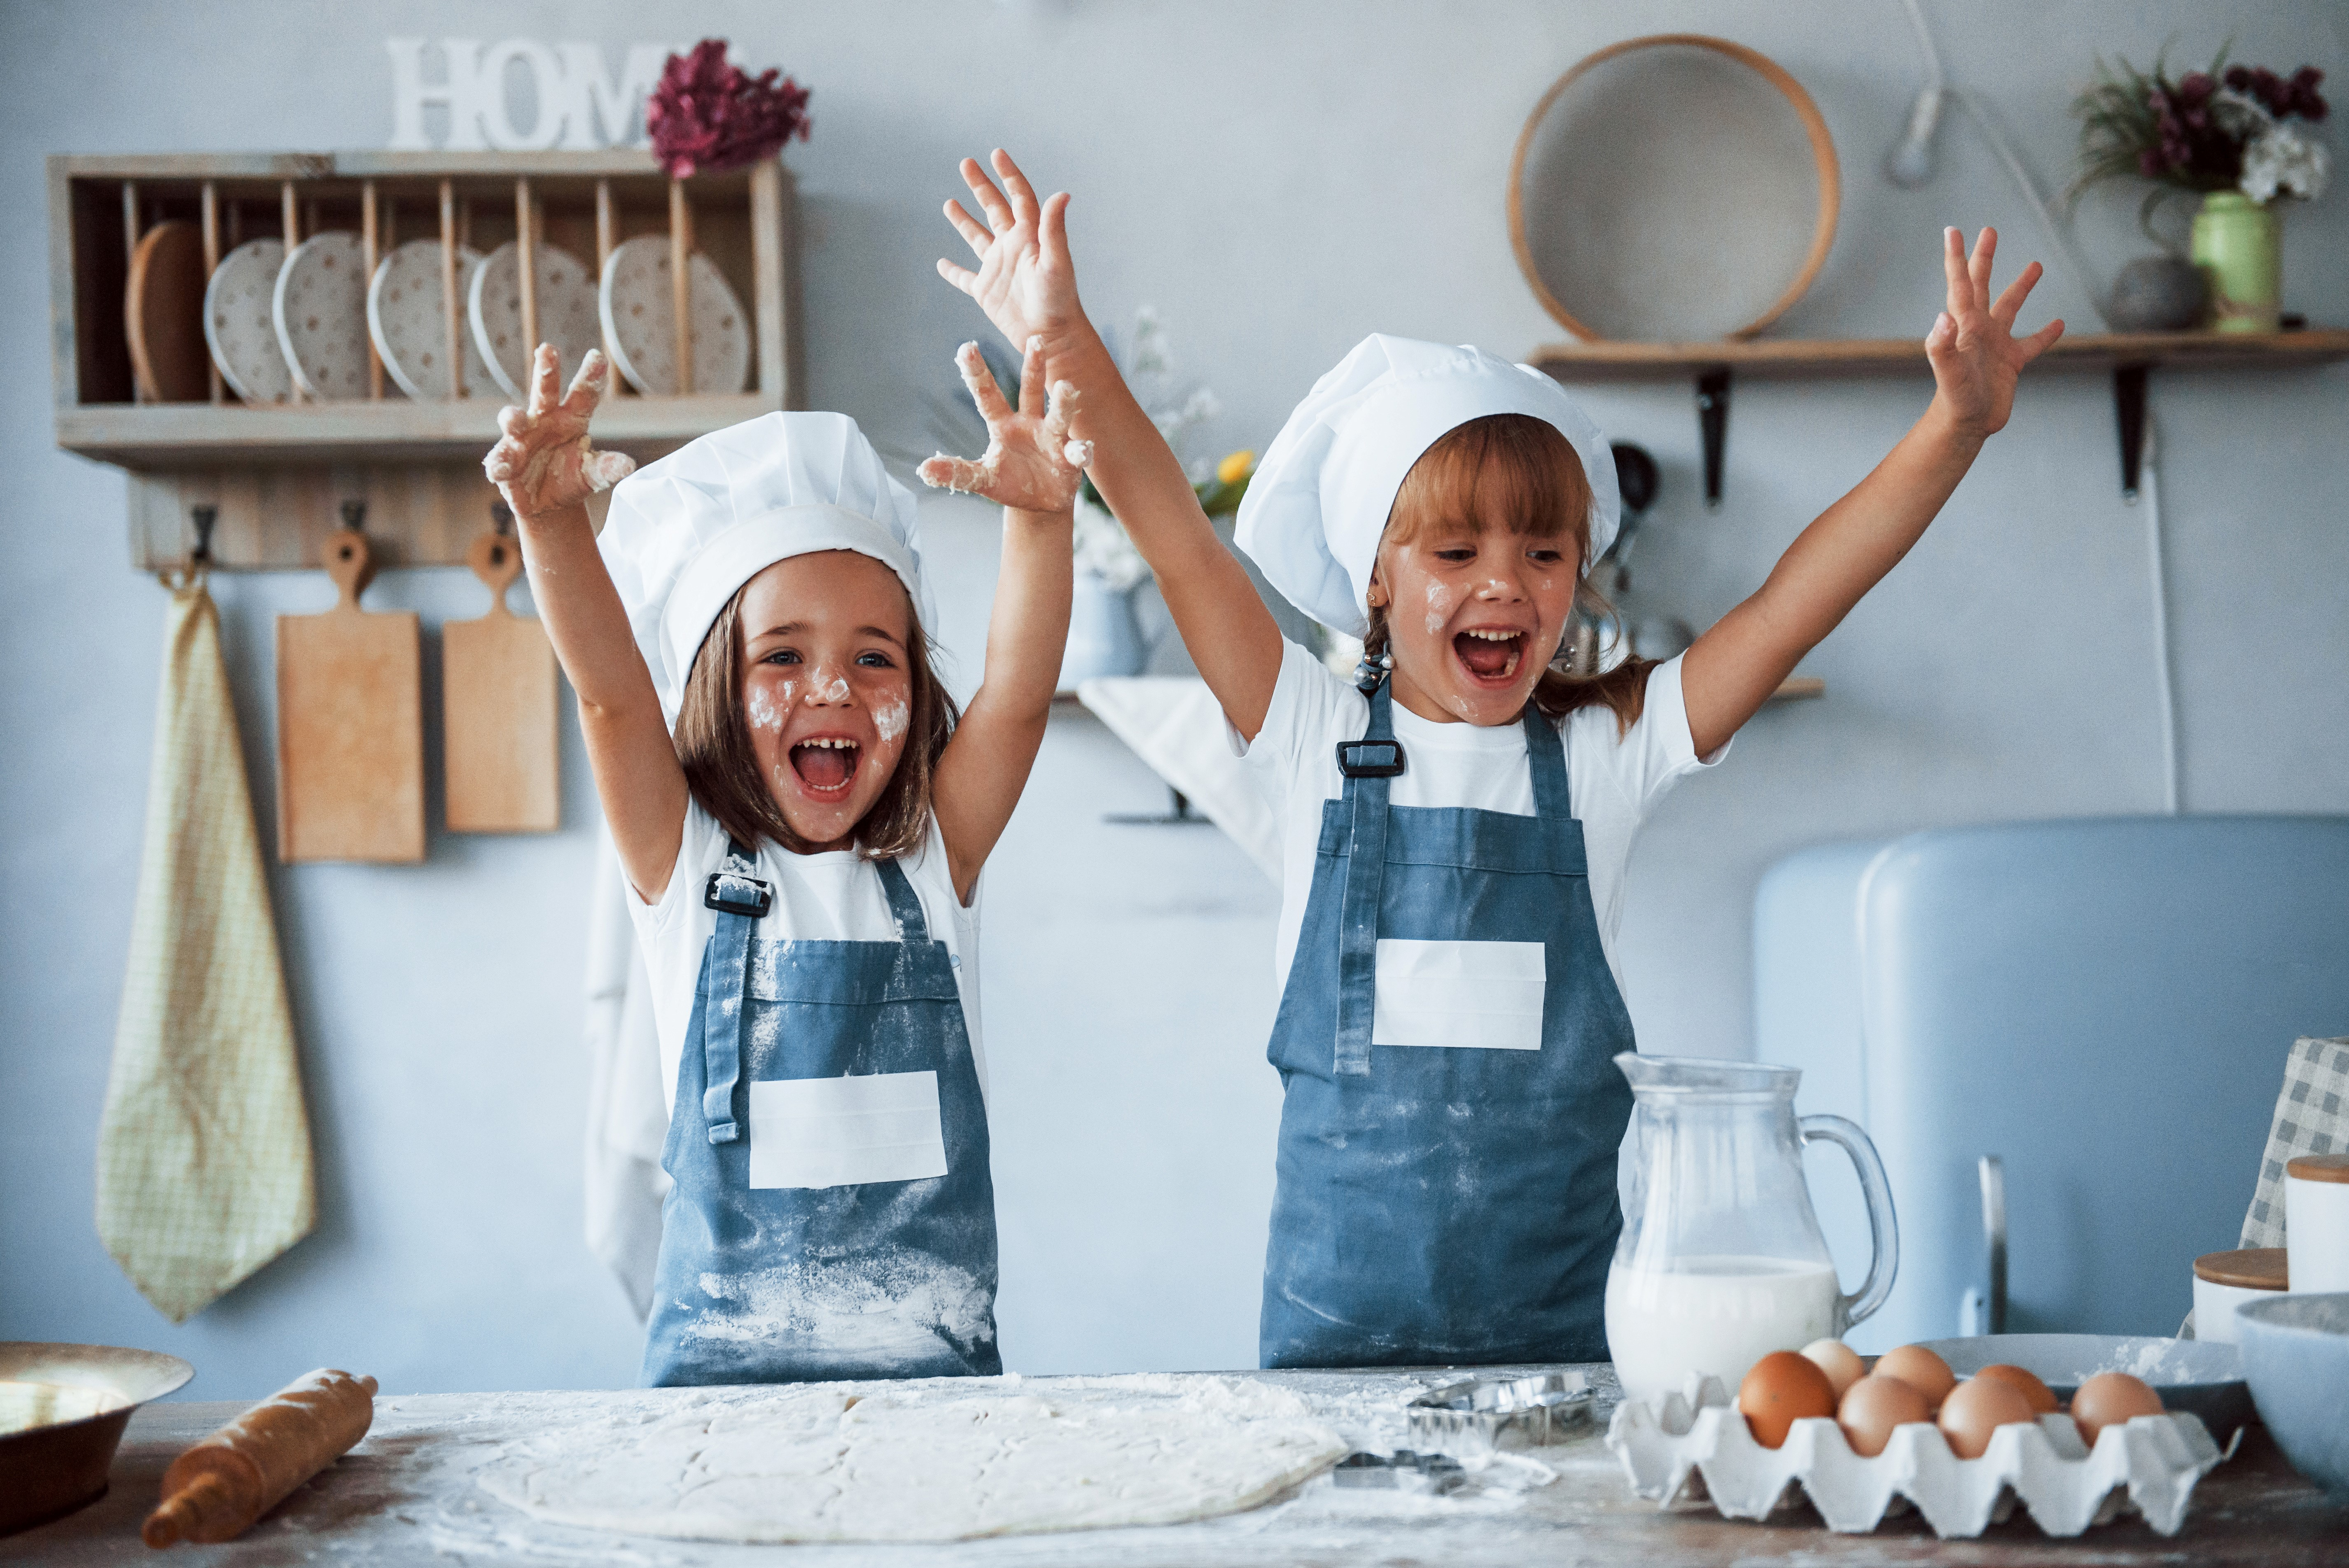 Kids Having Fun Learning How to Cook While Stuck At Home